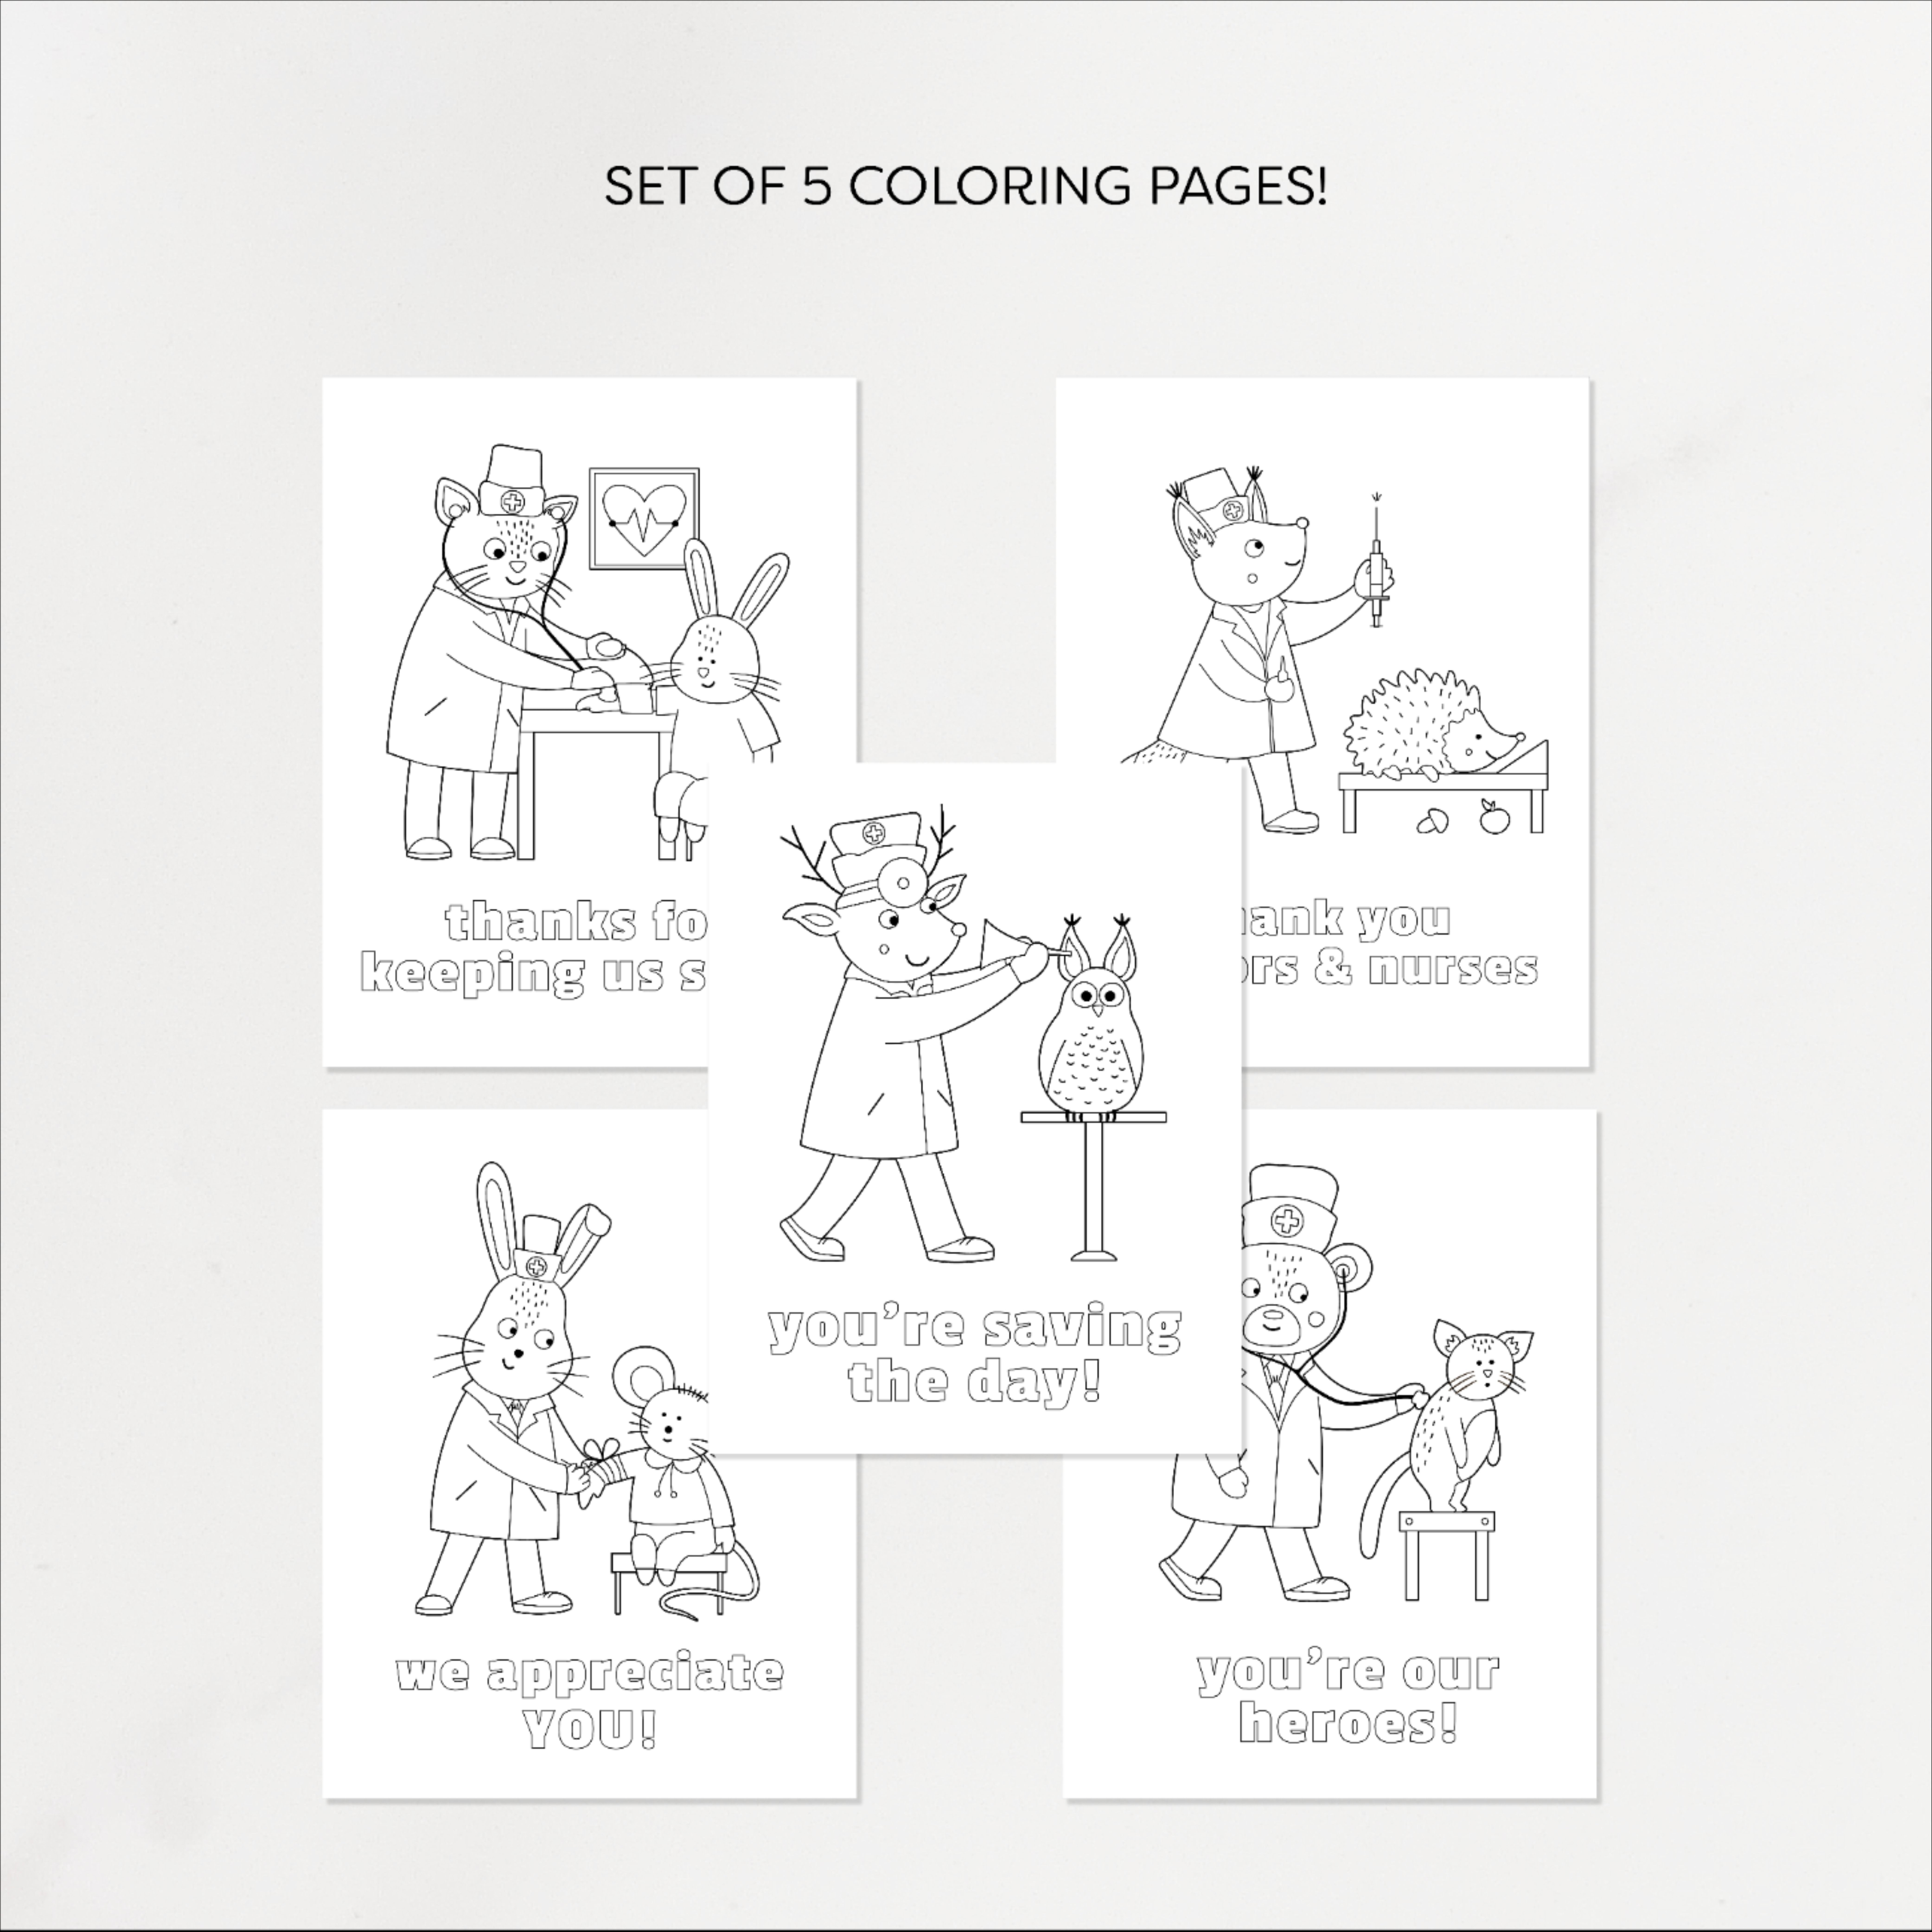 5 Coloring Pages For Kids Thank You Healthcare Workers Printable Kids Activity Printable Activities For Kids Coloring Pages For Kids Activities For Kids